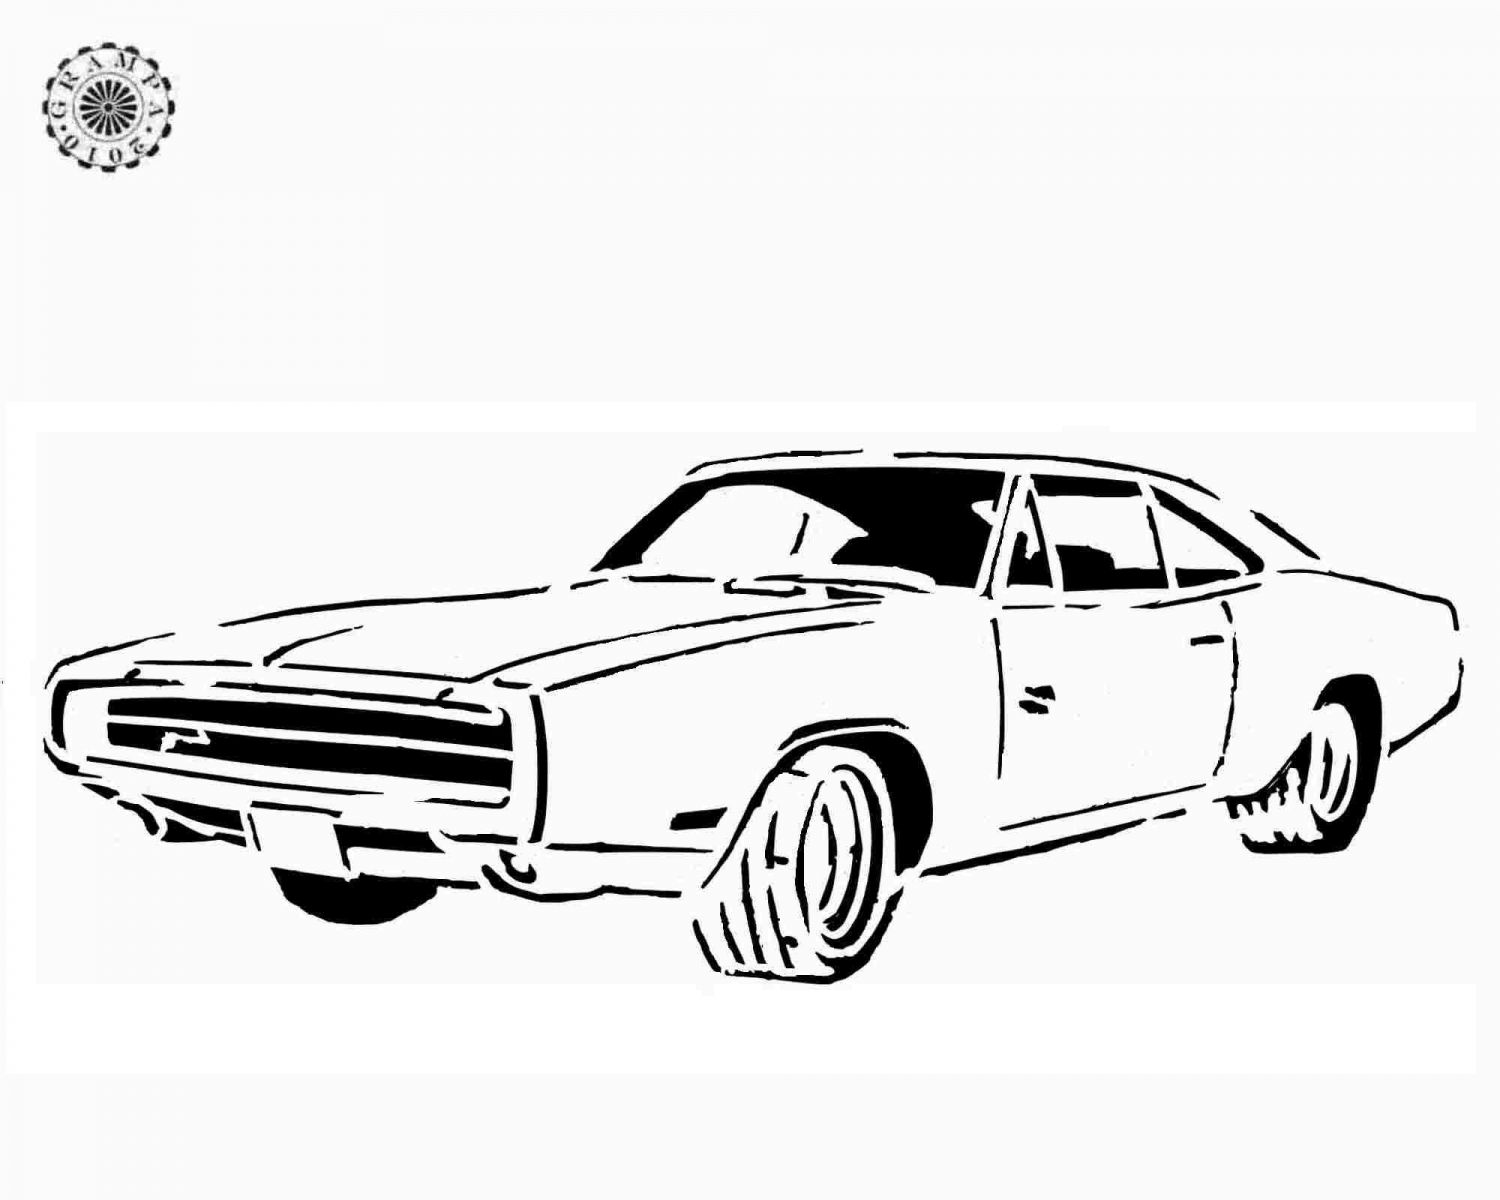 1969 dodge charger daytona drawings